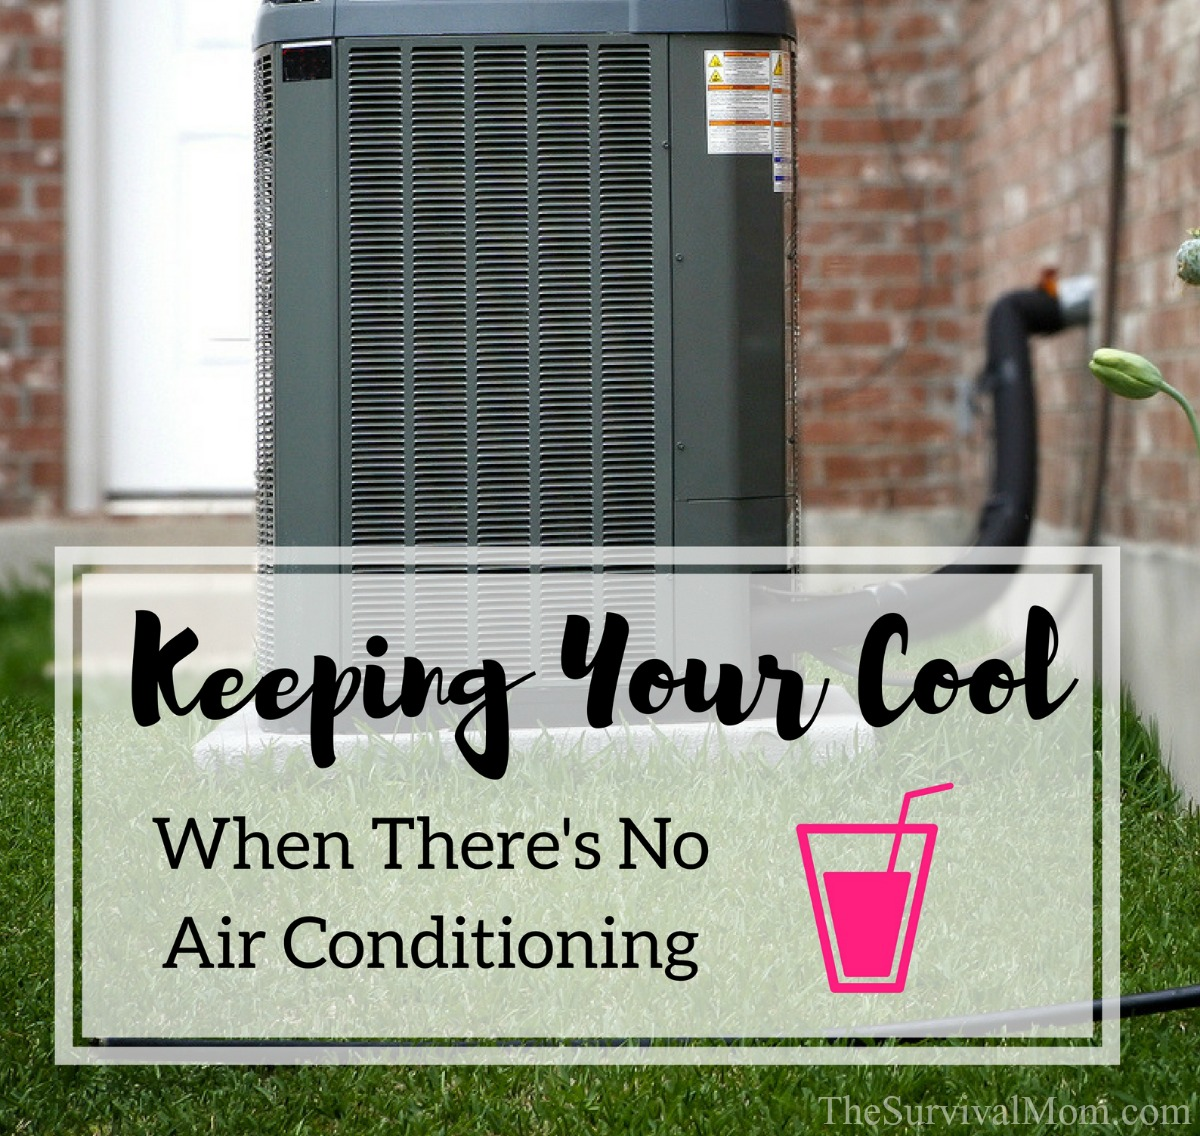 Keeping Your Cool When There's No Air Conditioning via The Survival Mom